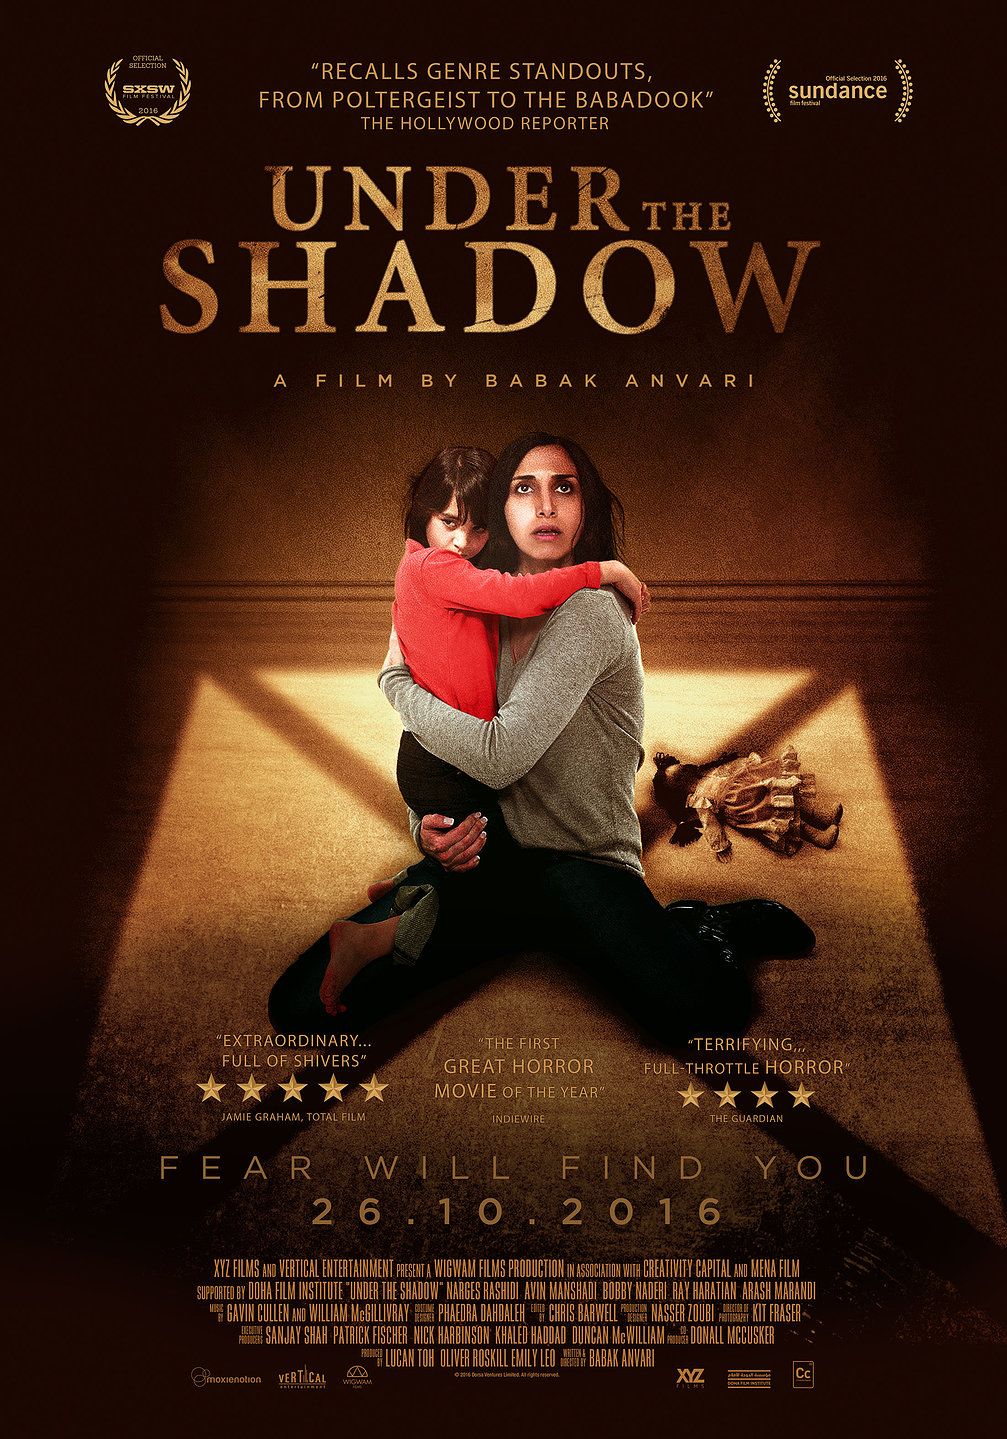 UNDER THE SHADOW POSTER2.jpg